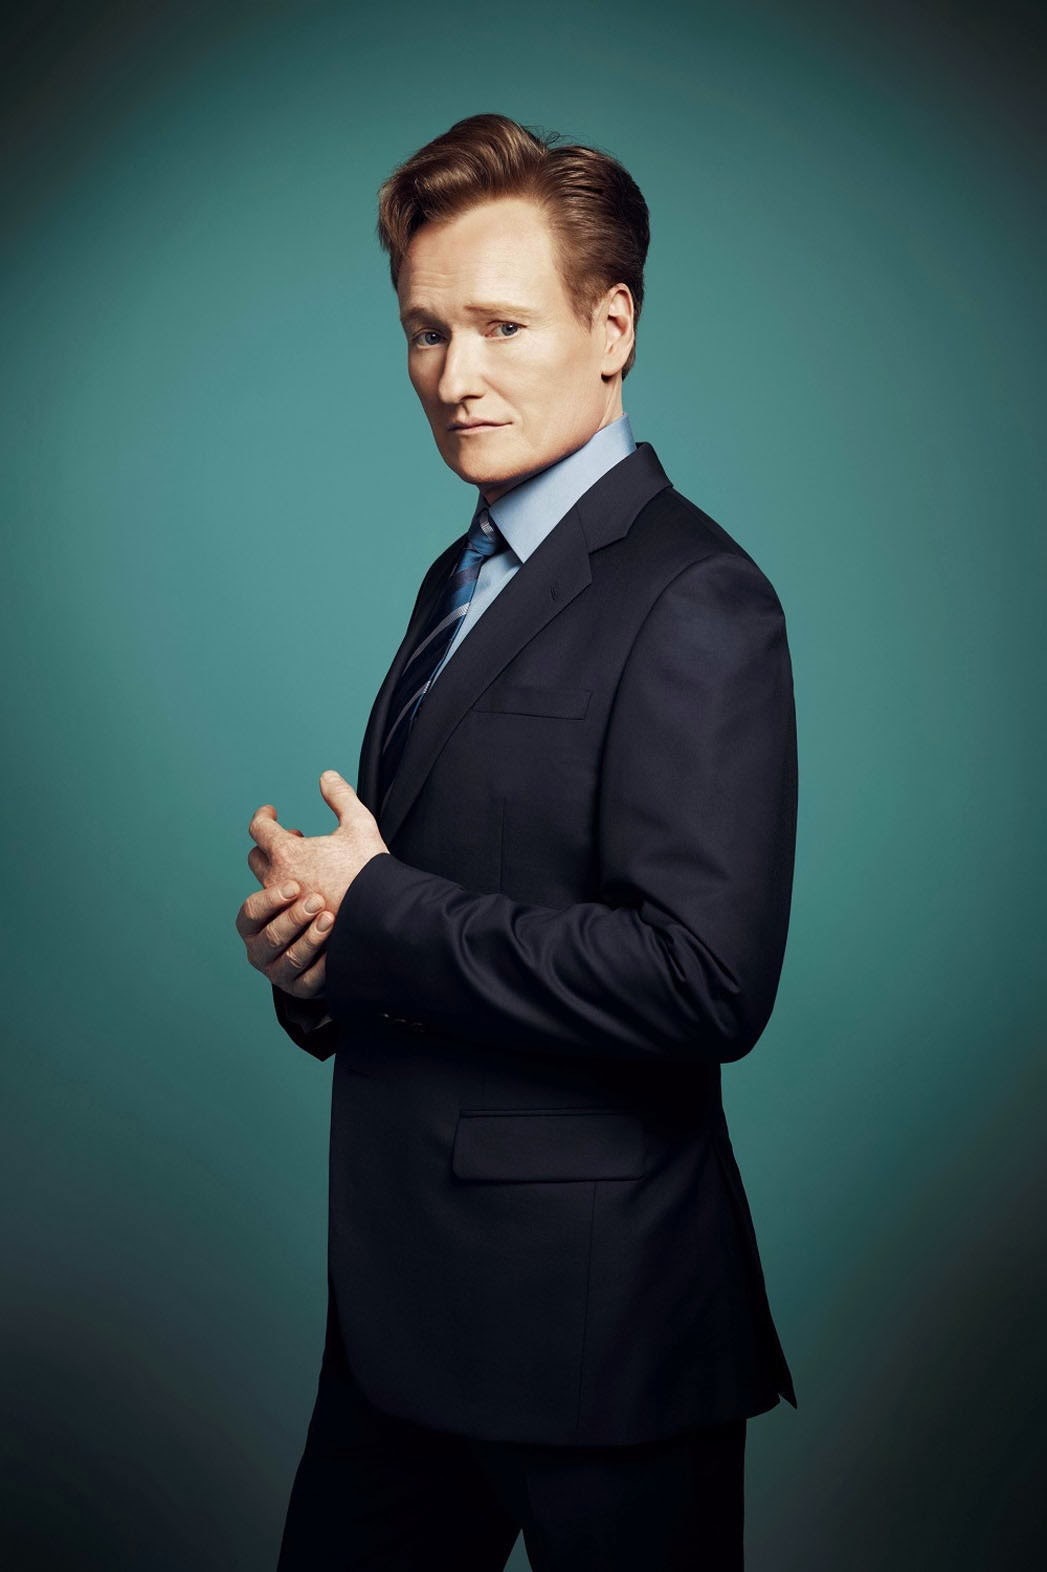 http://1.bp.blogspot.com/-SPAx9uTm5fI/UxbCrRkacoI/AAAAAAABgXQ/ltNpIo8t7gU/s1600/Conan+O%27Brien+To+Host+MTV+Movie+Awards.jpg